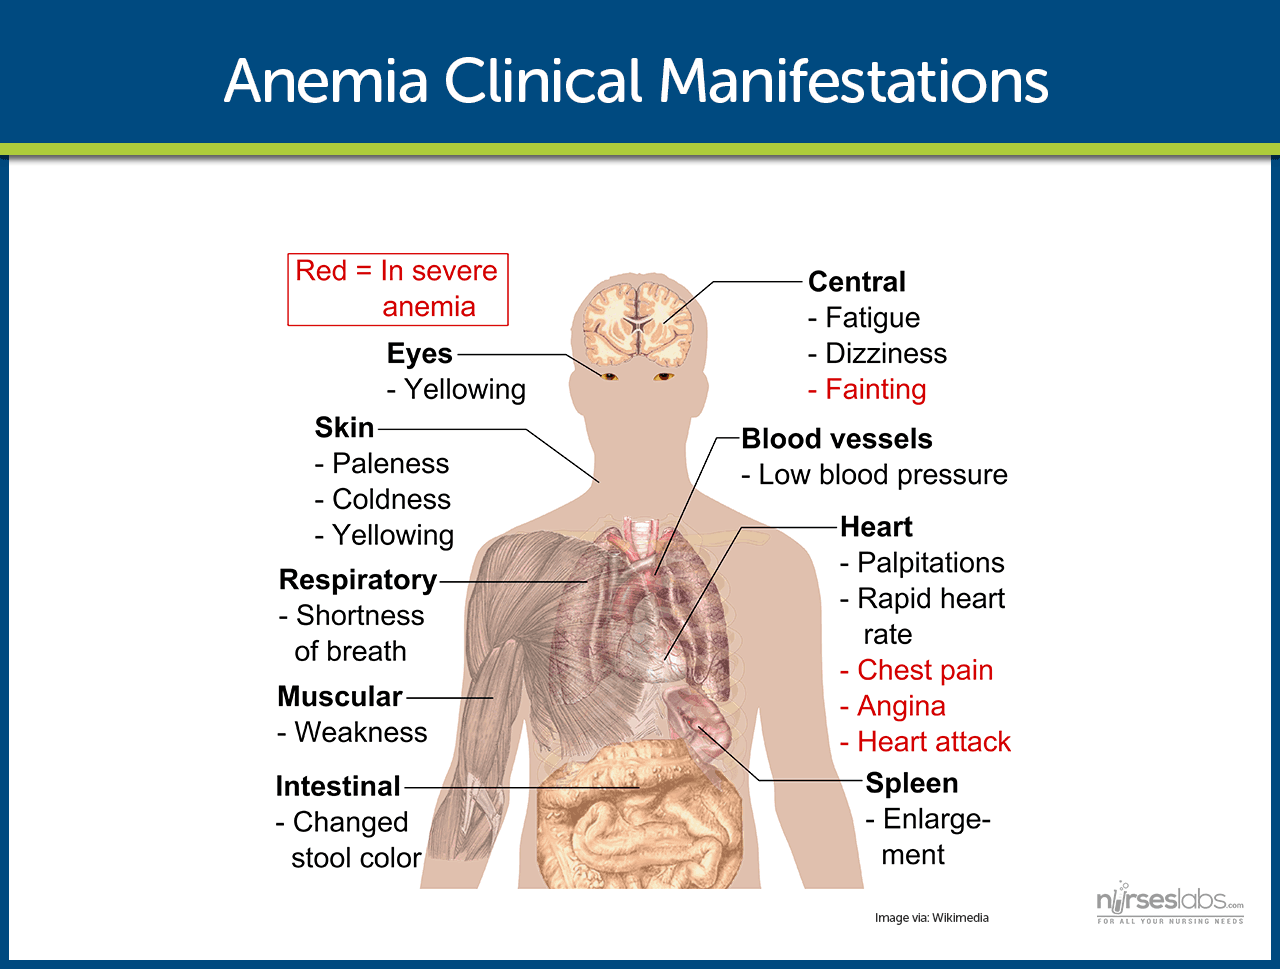 Anemia Nursing Care Management: A Study Guide